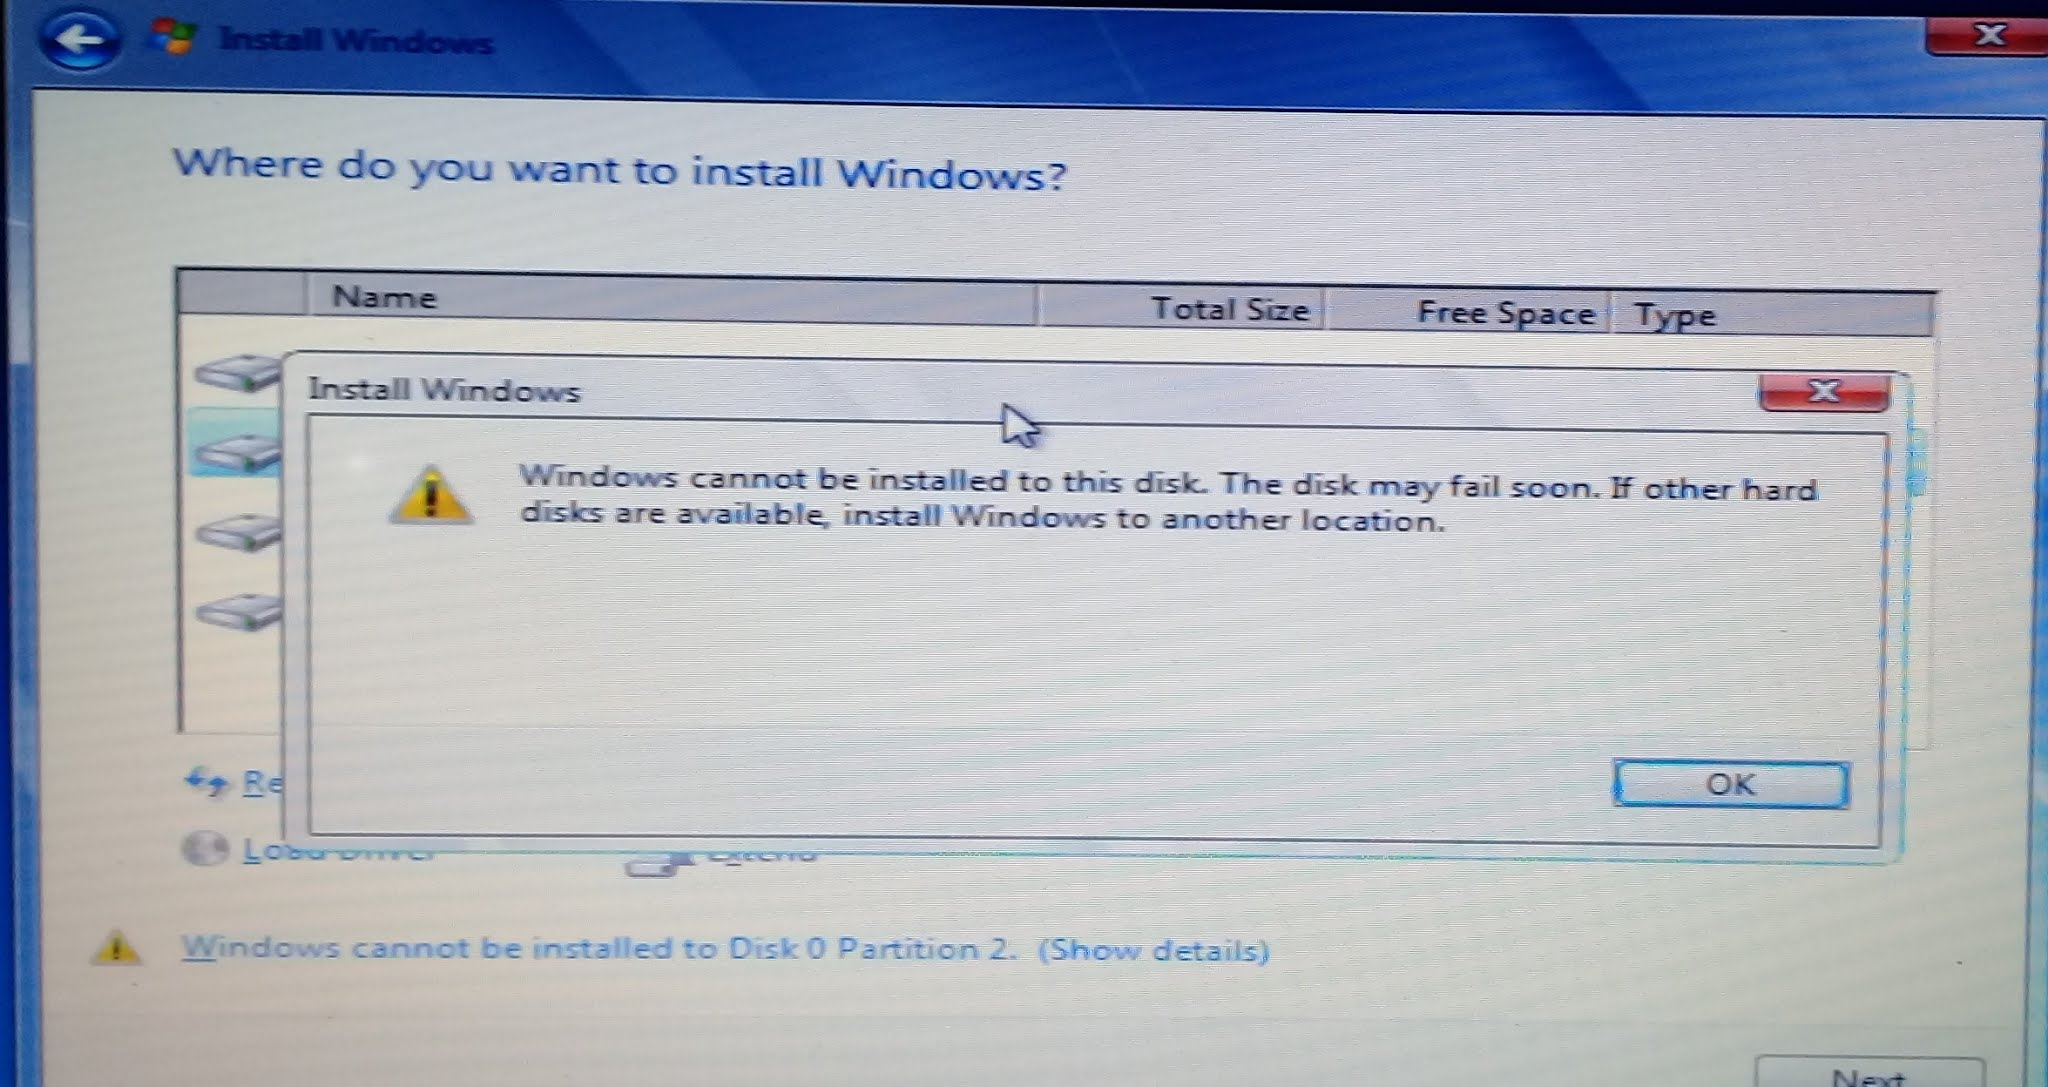 Windows cannot be installed to this disk. The disk may fail soon. If other hard disk are available, install Windows to another location.